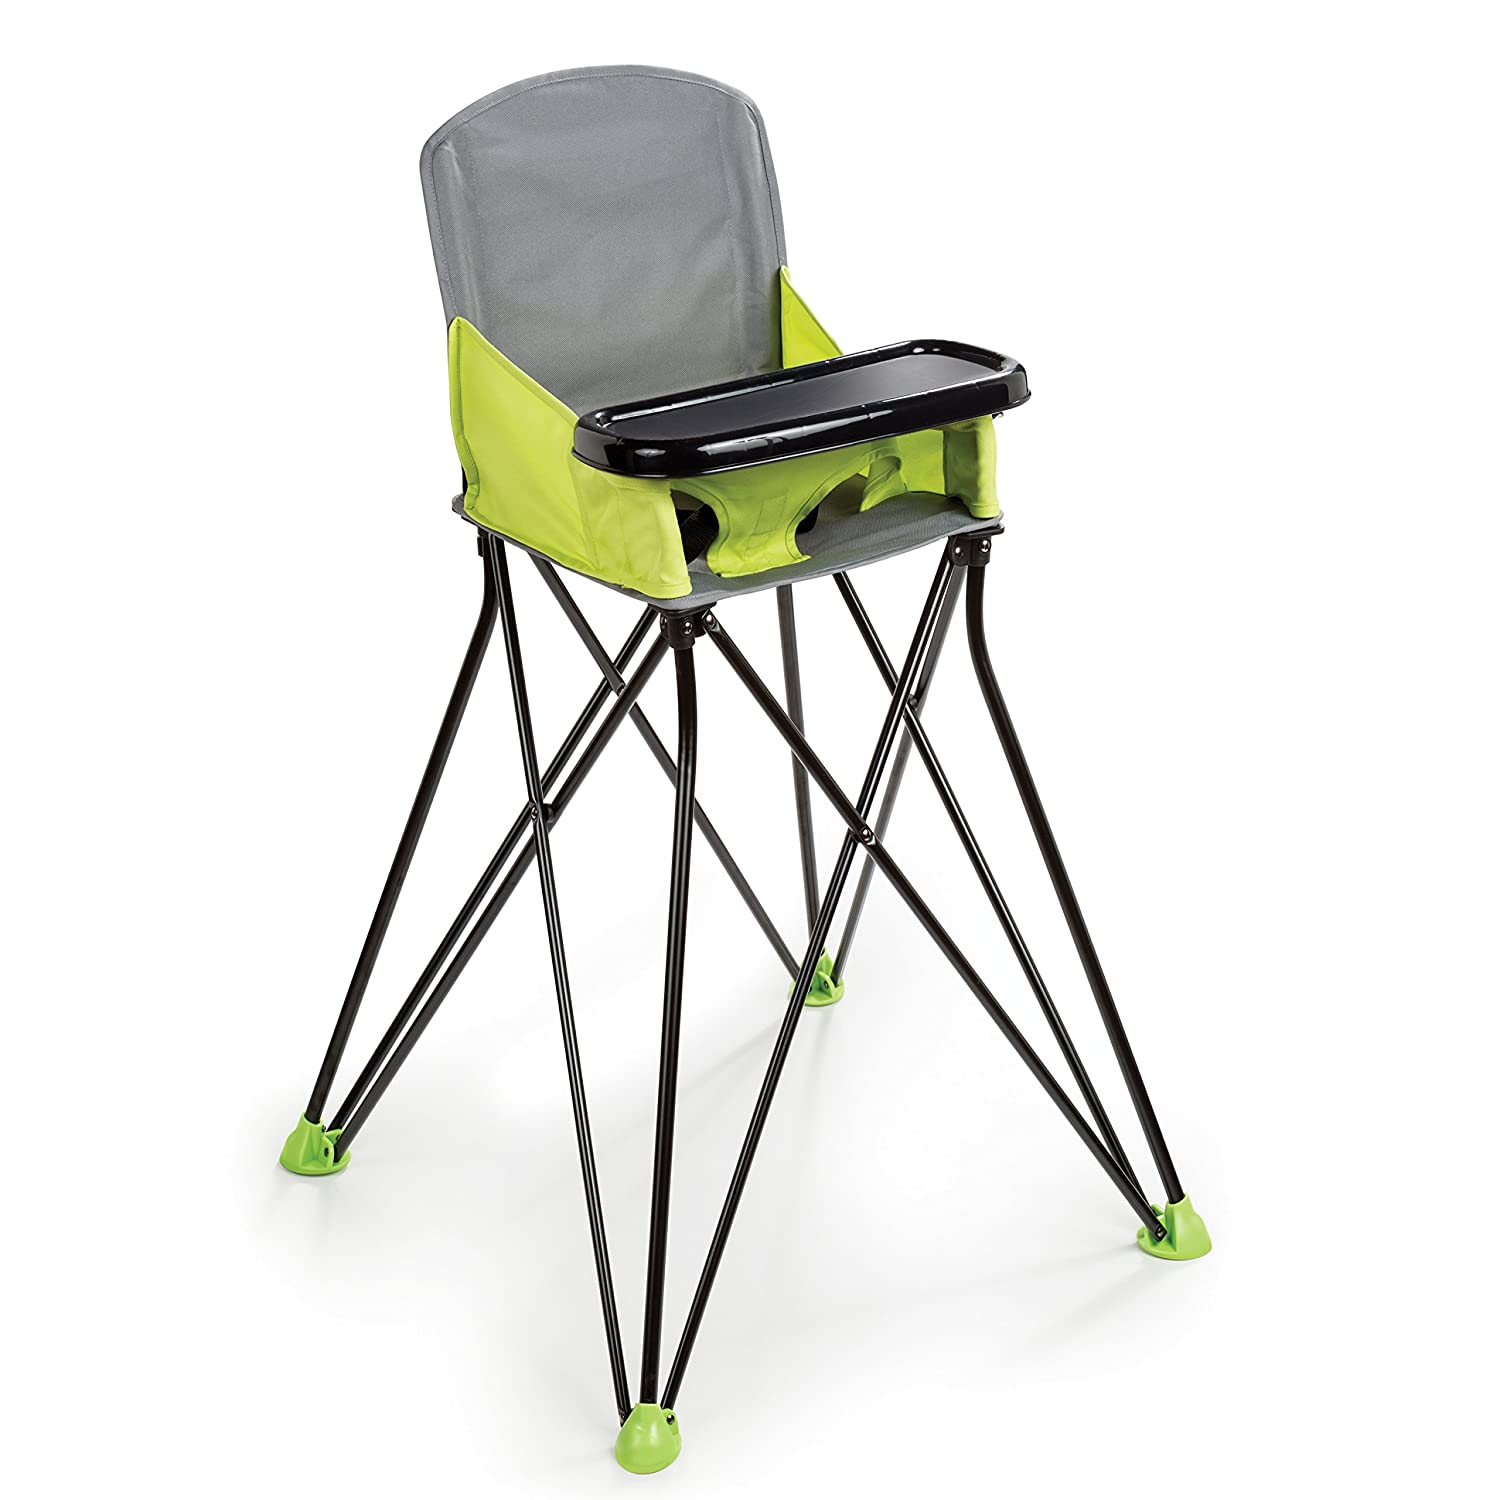 Summer Infant Pop 'N Sit Portable High Chair, Lime 22473